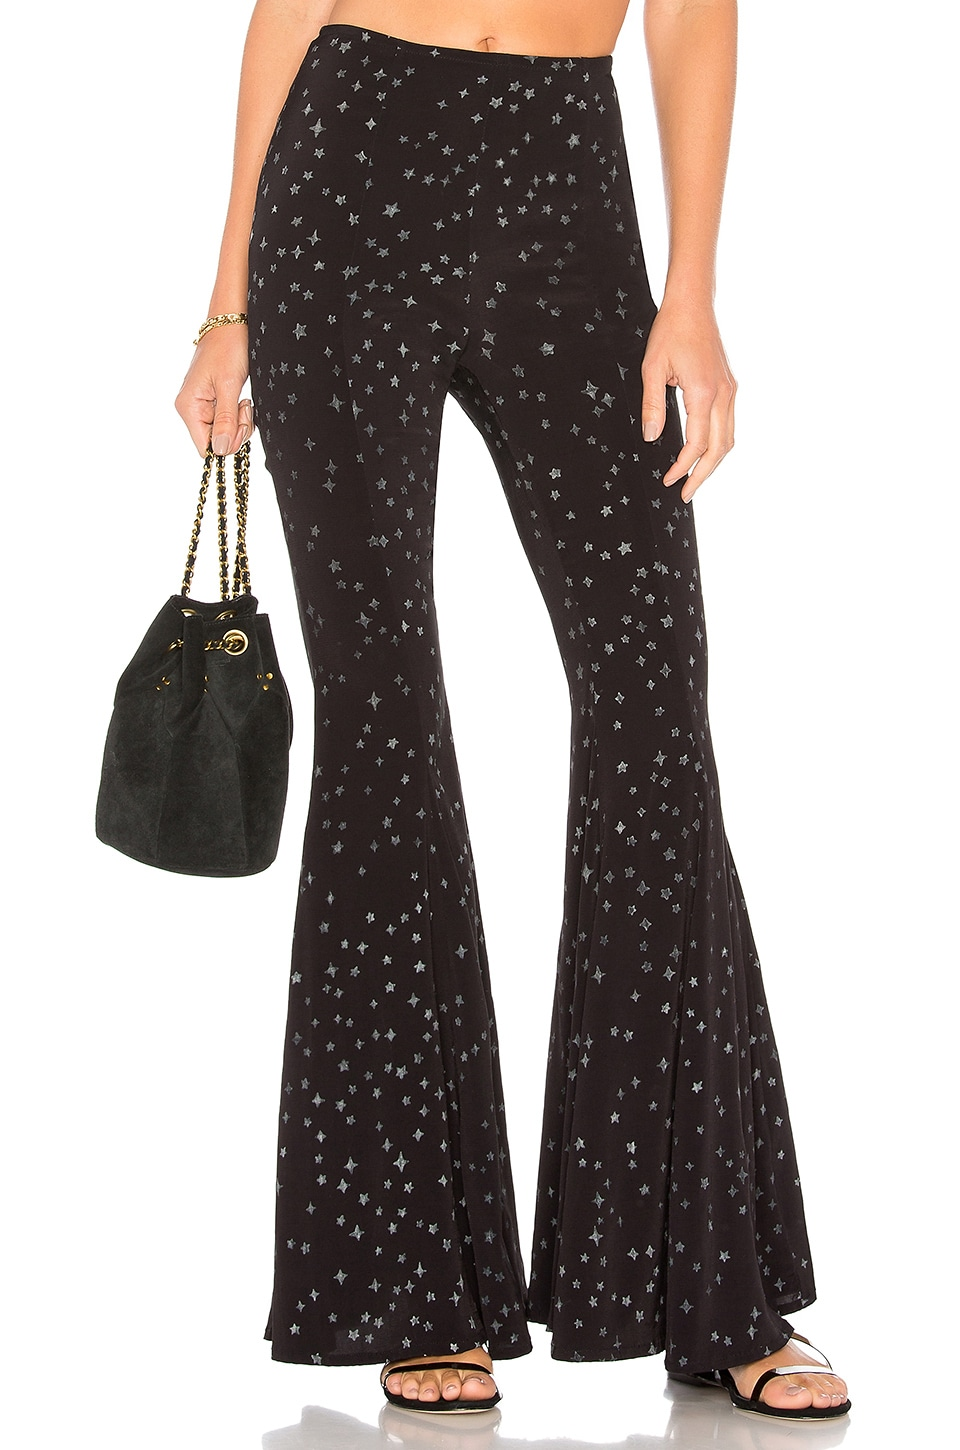 Eagle Bell Bottoms